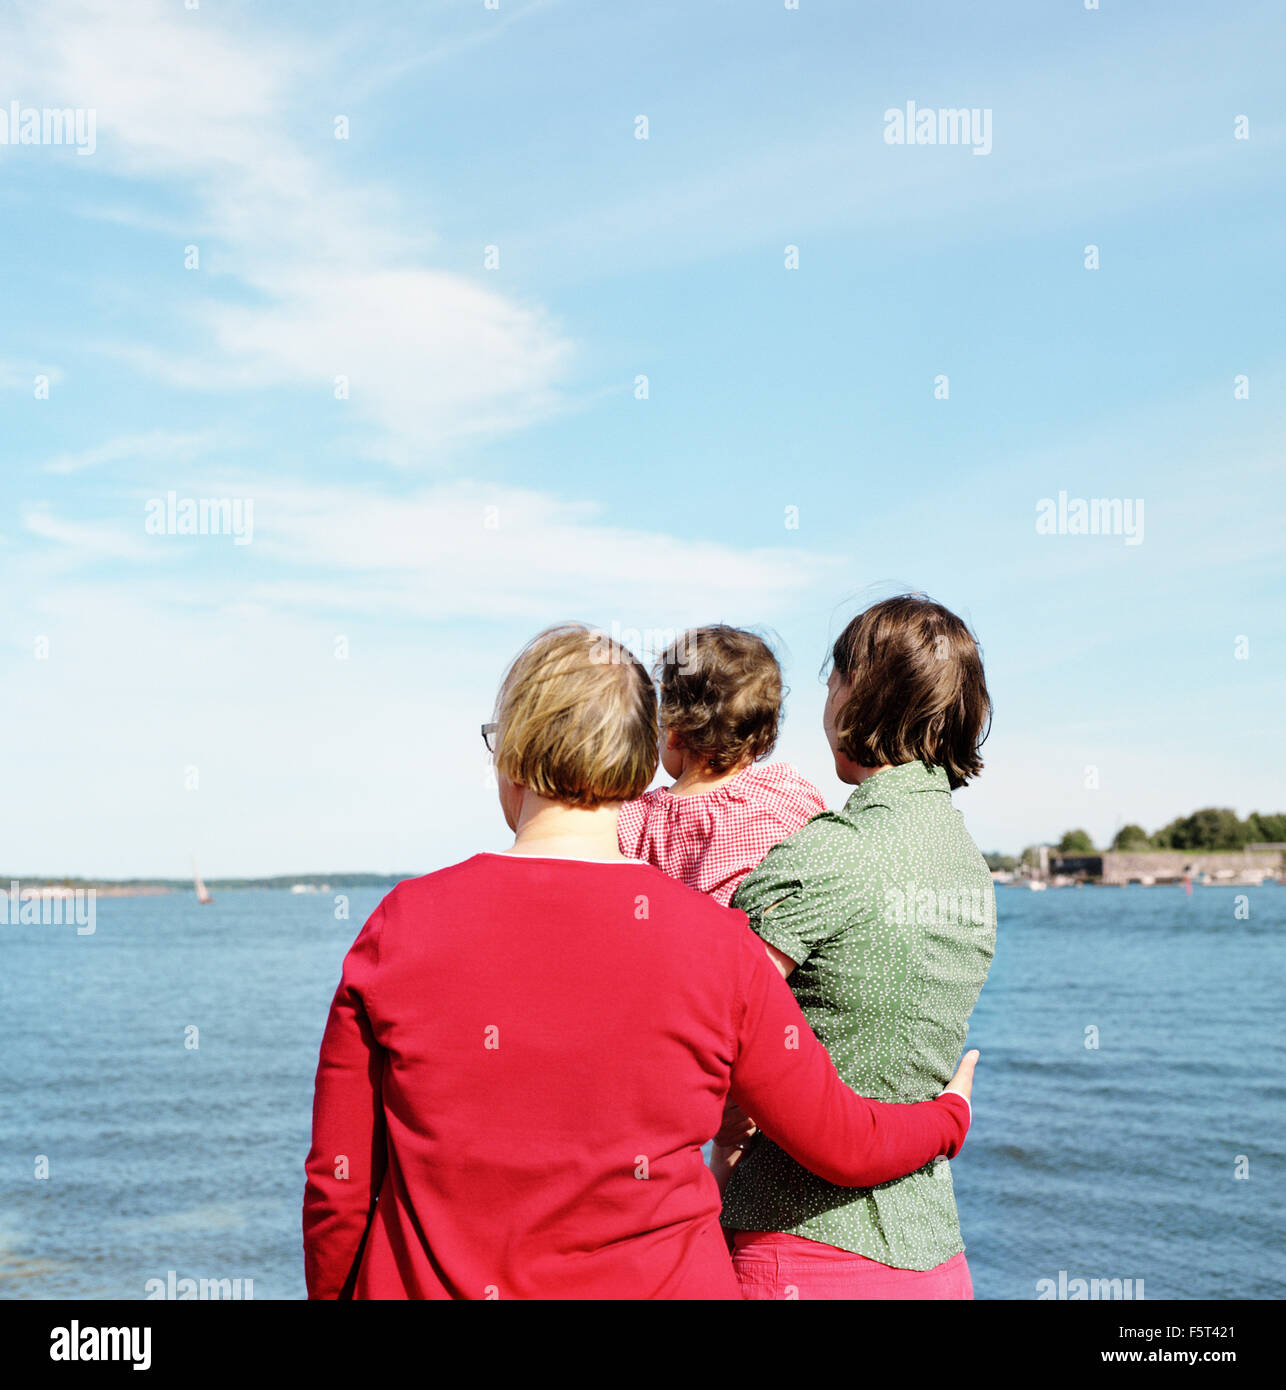 Finland, Helsinki, Uusimaa, Rear view of mother, daughter (2-3) and grandmother - Stock Image